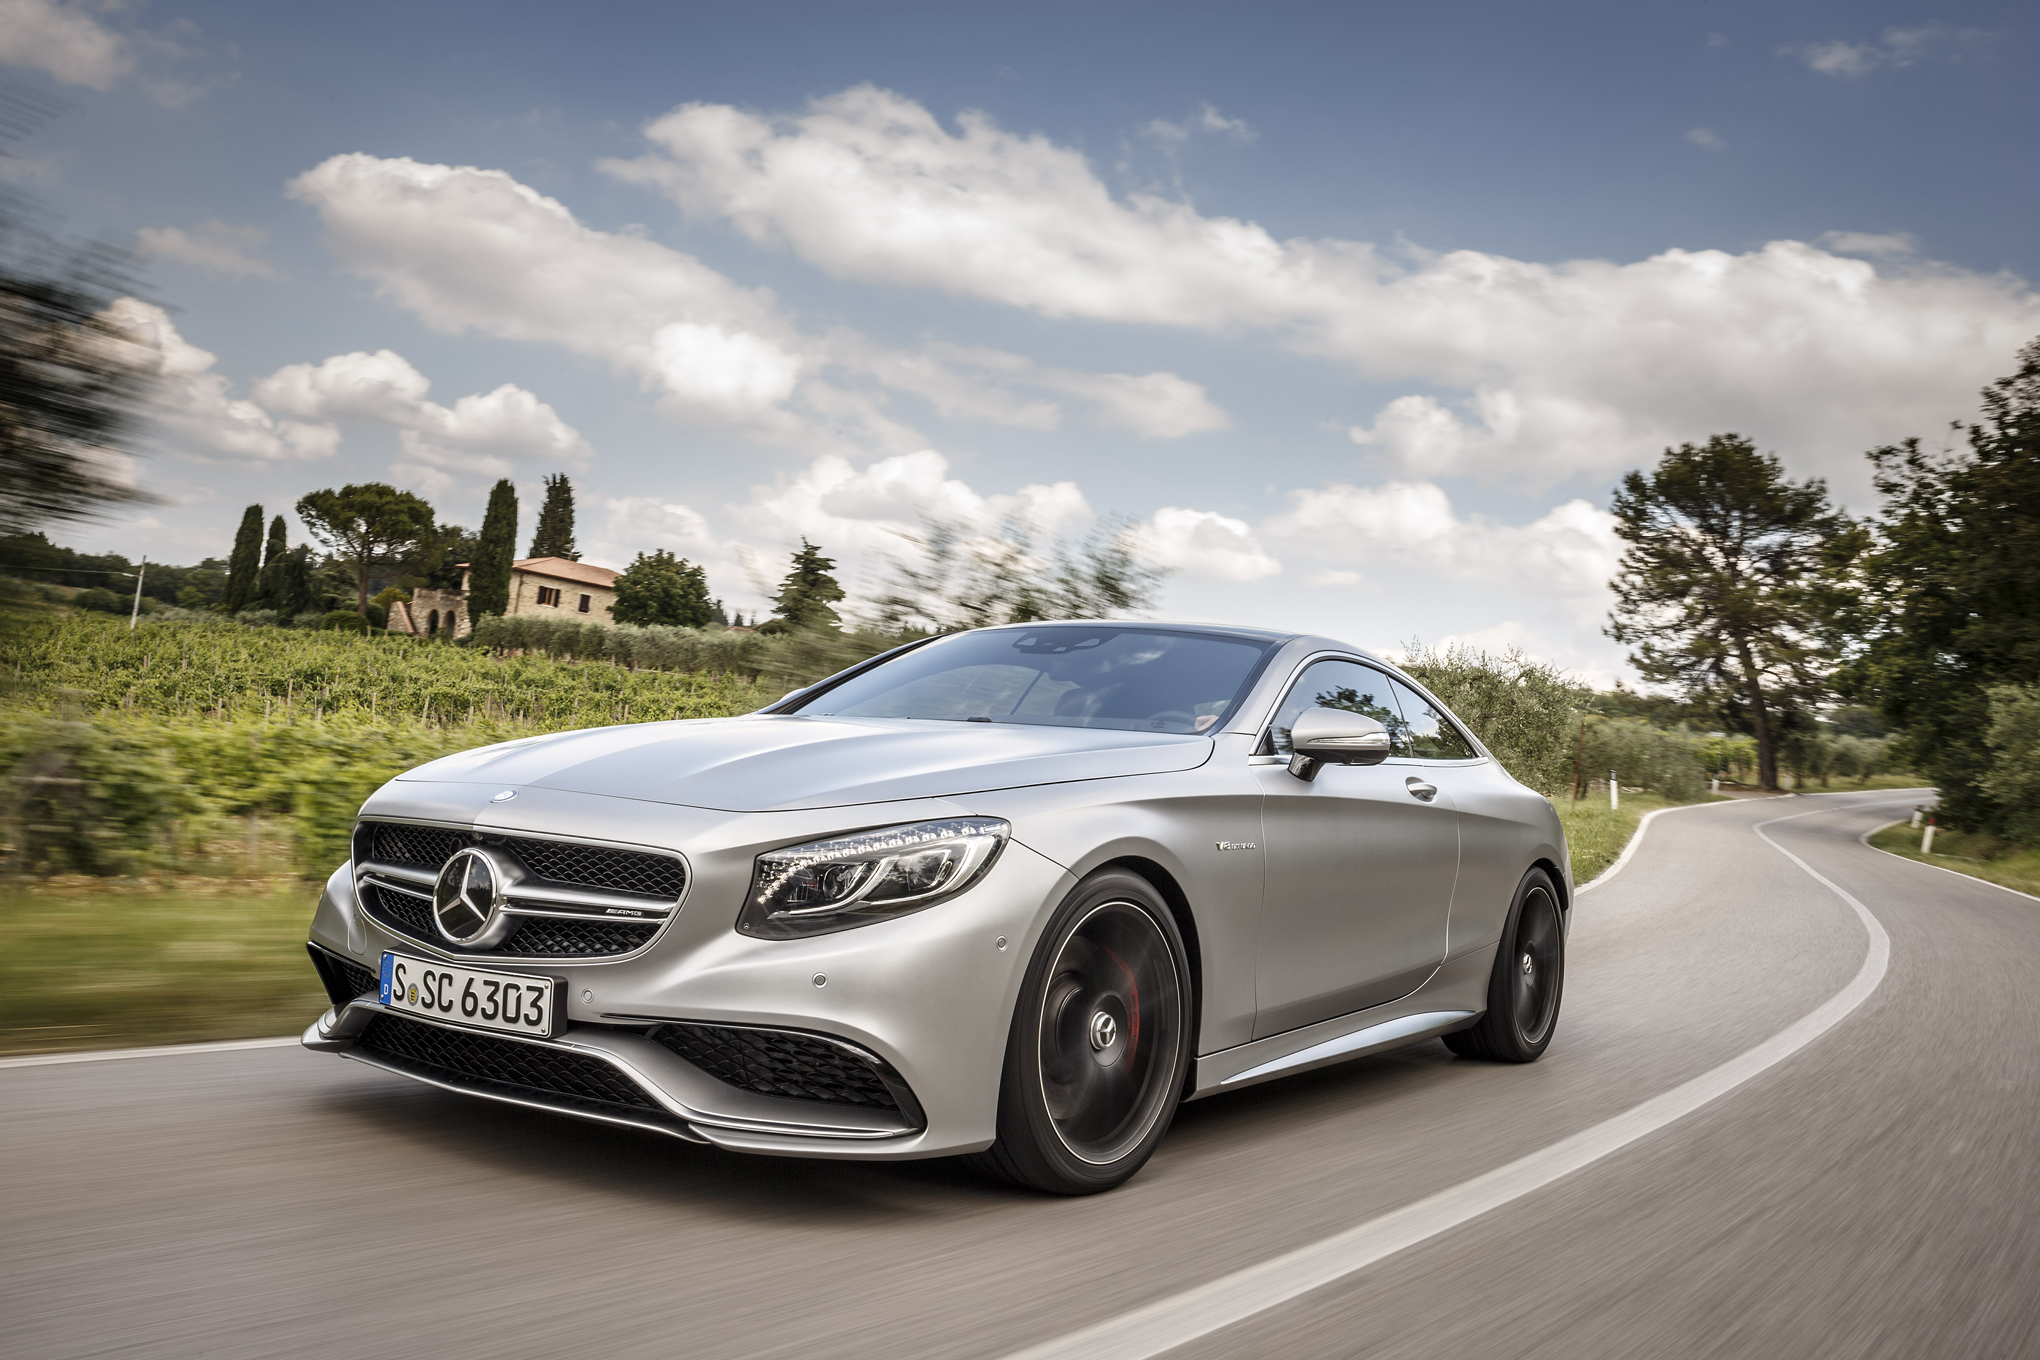 2015 Mercedes-Benz S63 AMG Coupe Second Drive - Motor Trend